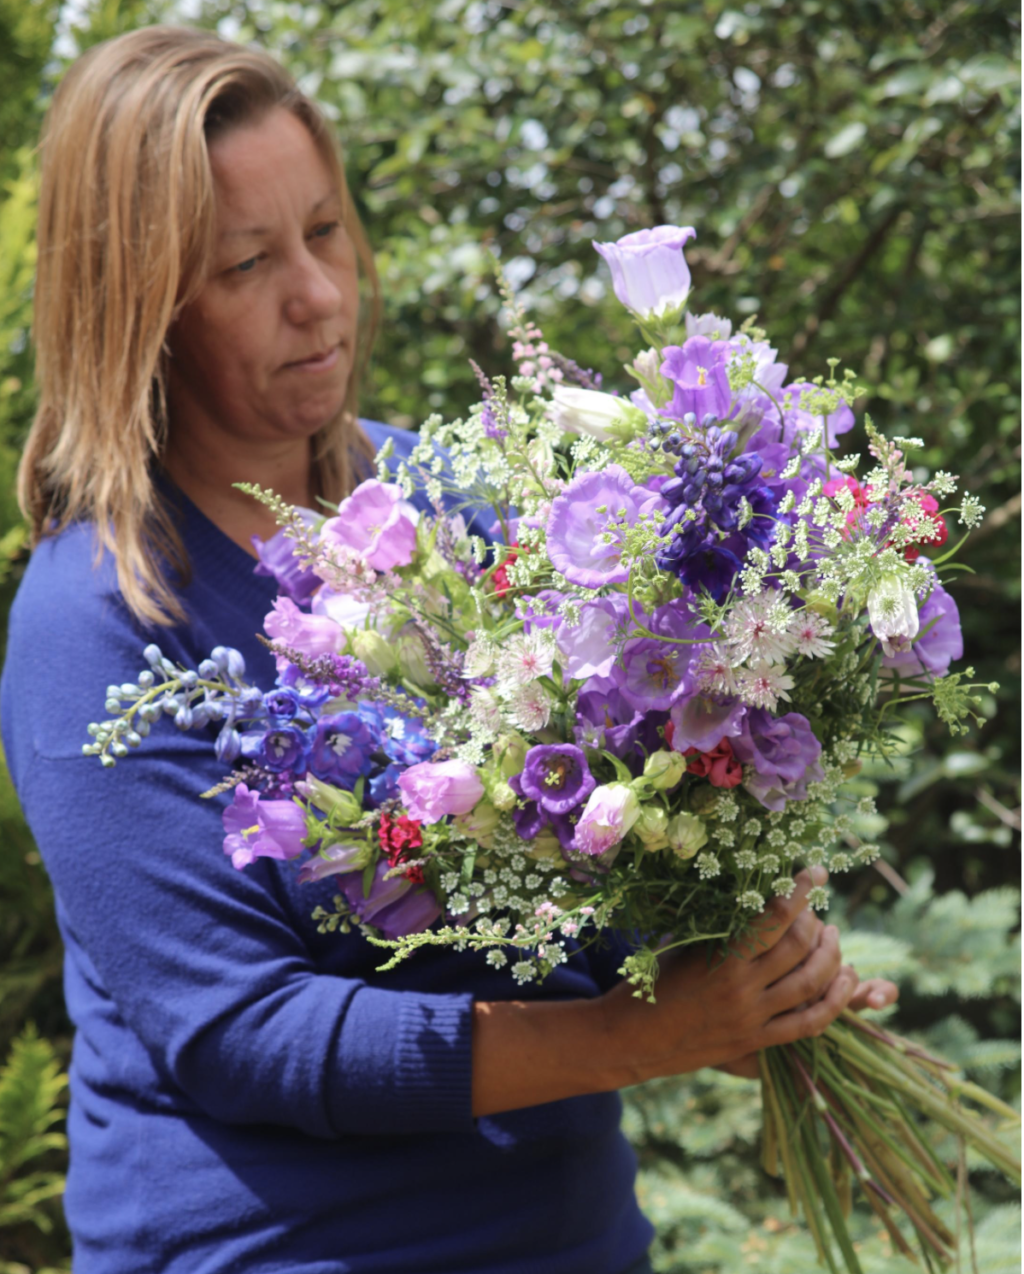 Debbie of Nature's Posy, Cambridgshire, holds an abundant meadow style bouquet filled with freshly cut British flowers from her flower farm. It's filled with the pretty purples of Canterbury Bells,starry pale pink astrantia, frothy white ammi majus and the stately blue spires of delphiniums.